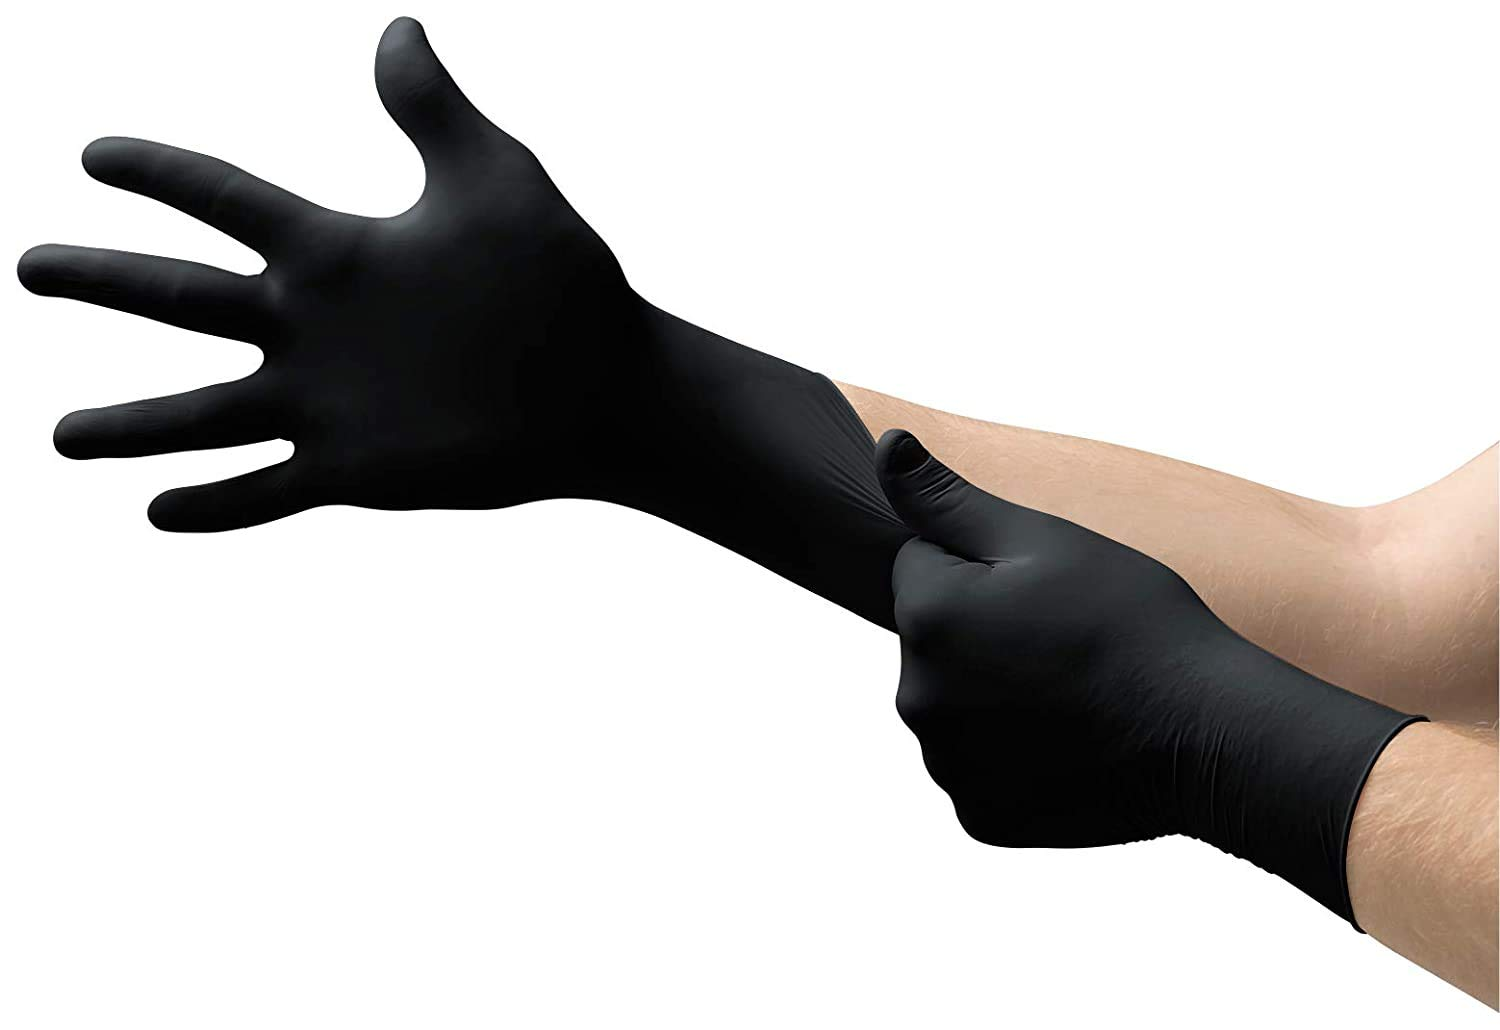 Microflex Onyx N64 Disposable Nitrile Gloves, Latex-Free, Textured, Multi-Purpose Automotive/Mechanic, Cleaning, Medical/Exam and Food Prep Gloves, Black, Size X-Large, Box of 100